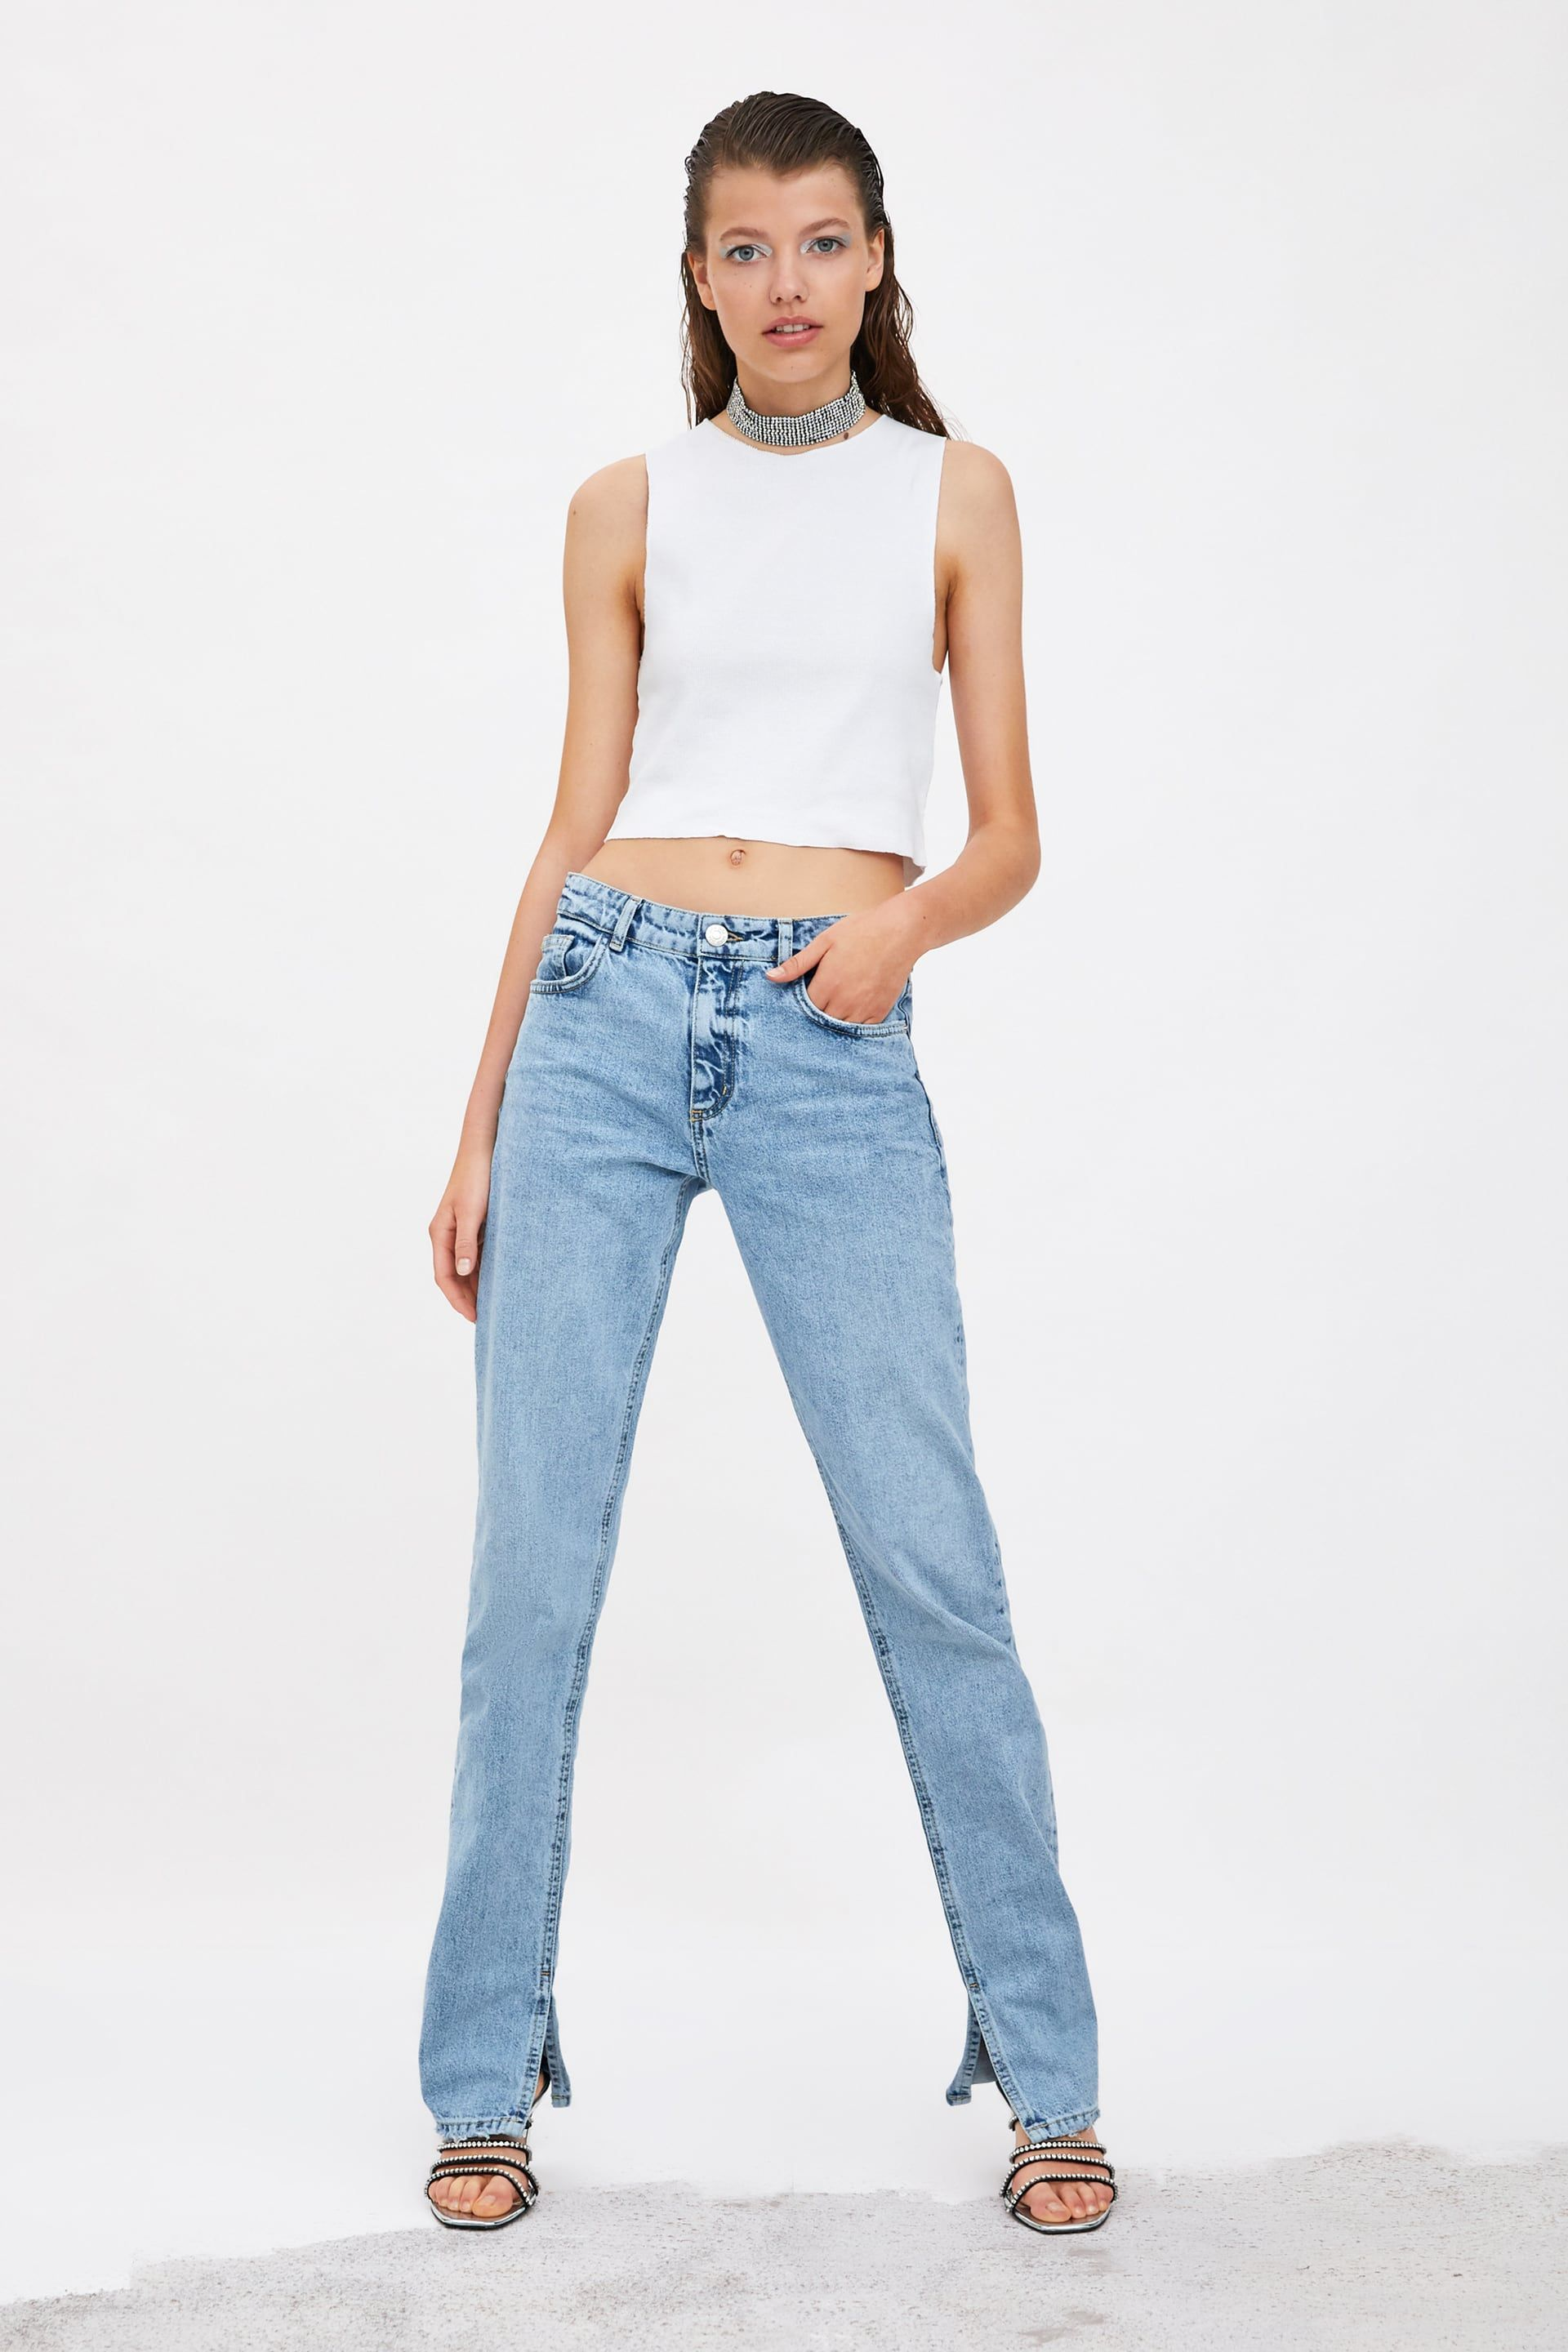 00f6a1ff4c JEANS HI RISE SLIM in 2019 | Products I Love | Jeans, Zara jeans ...